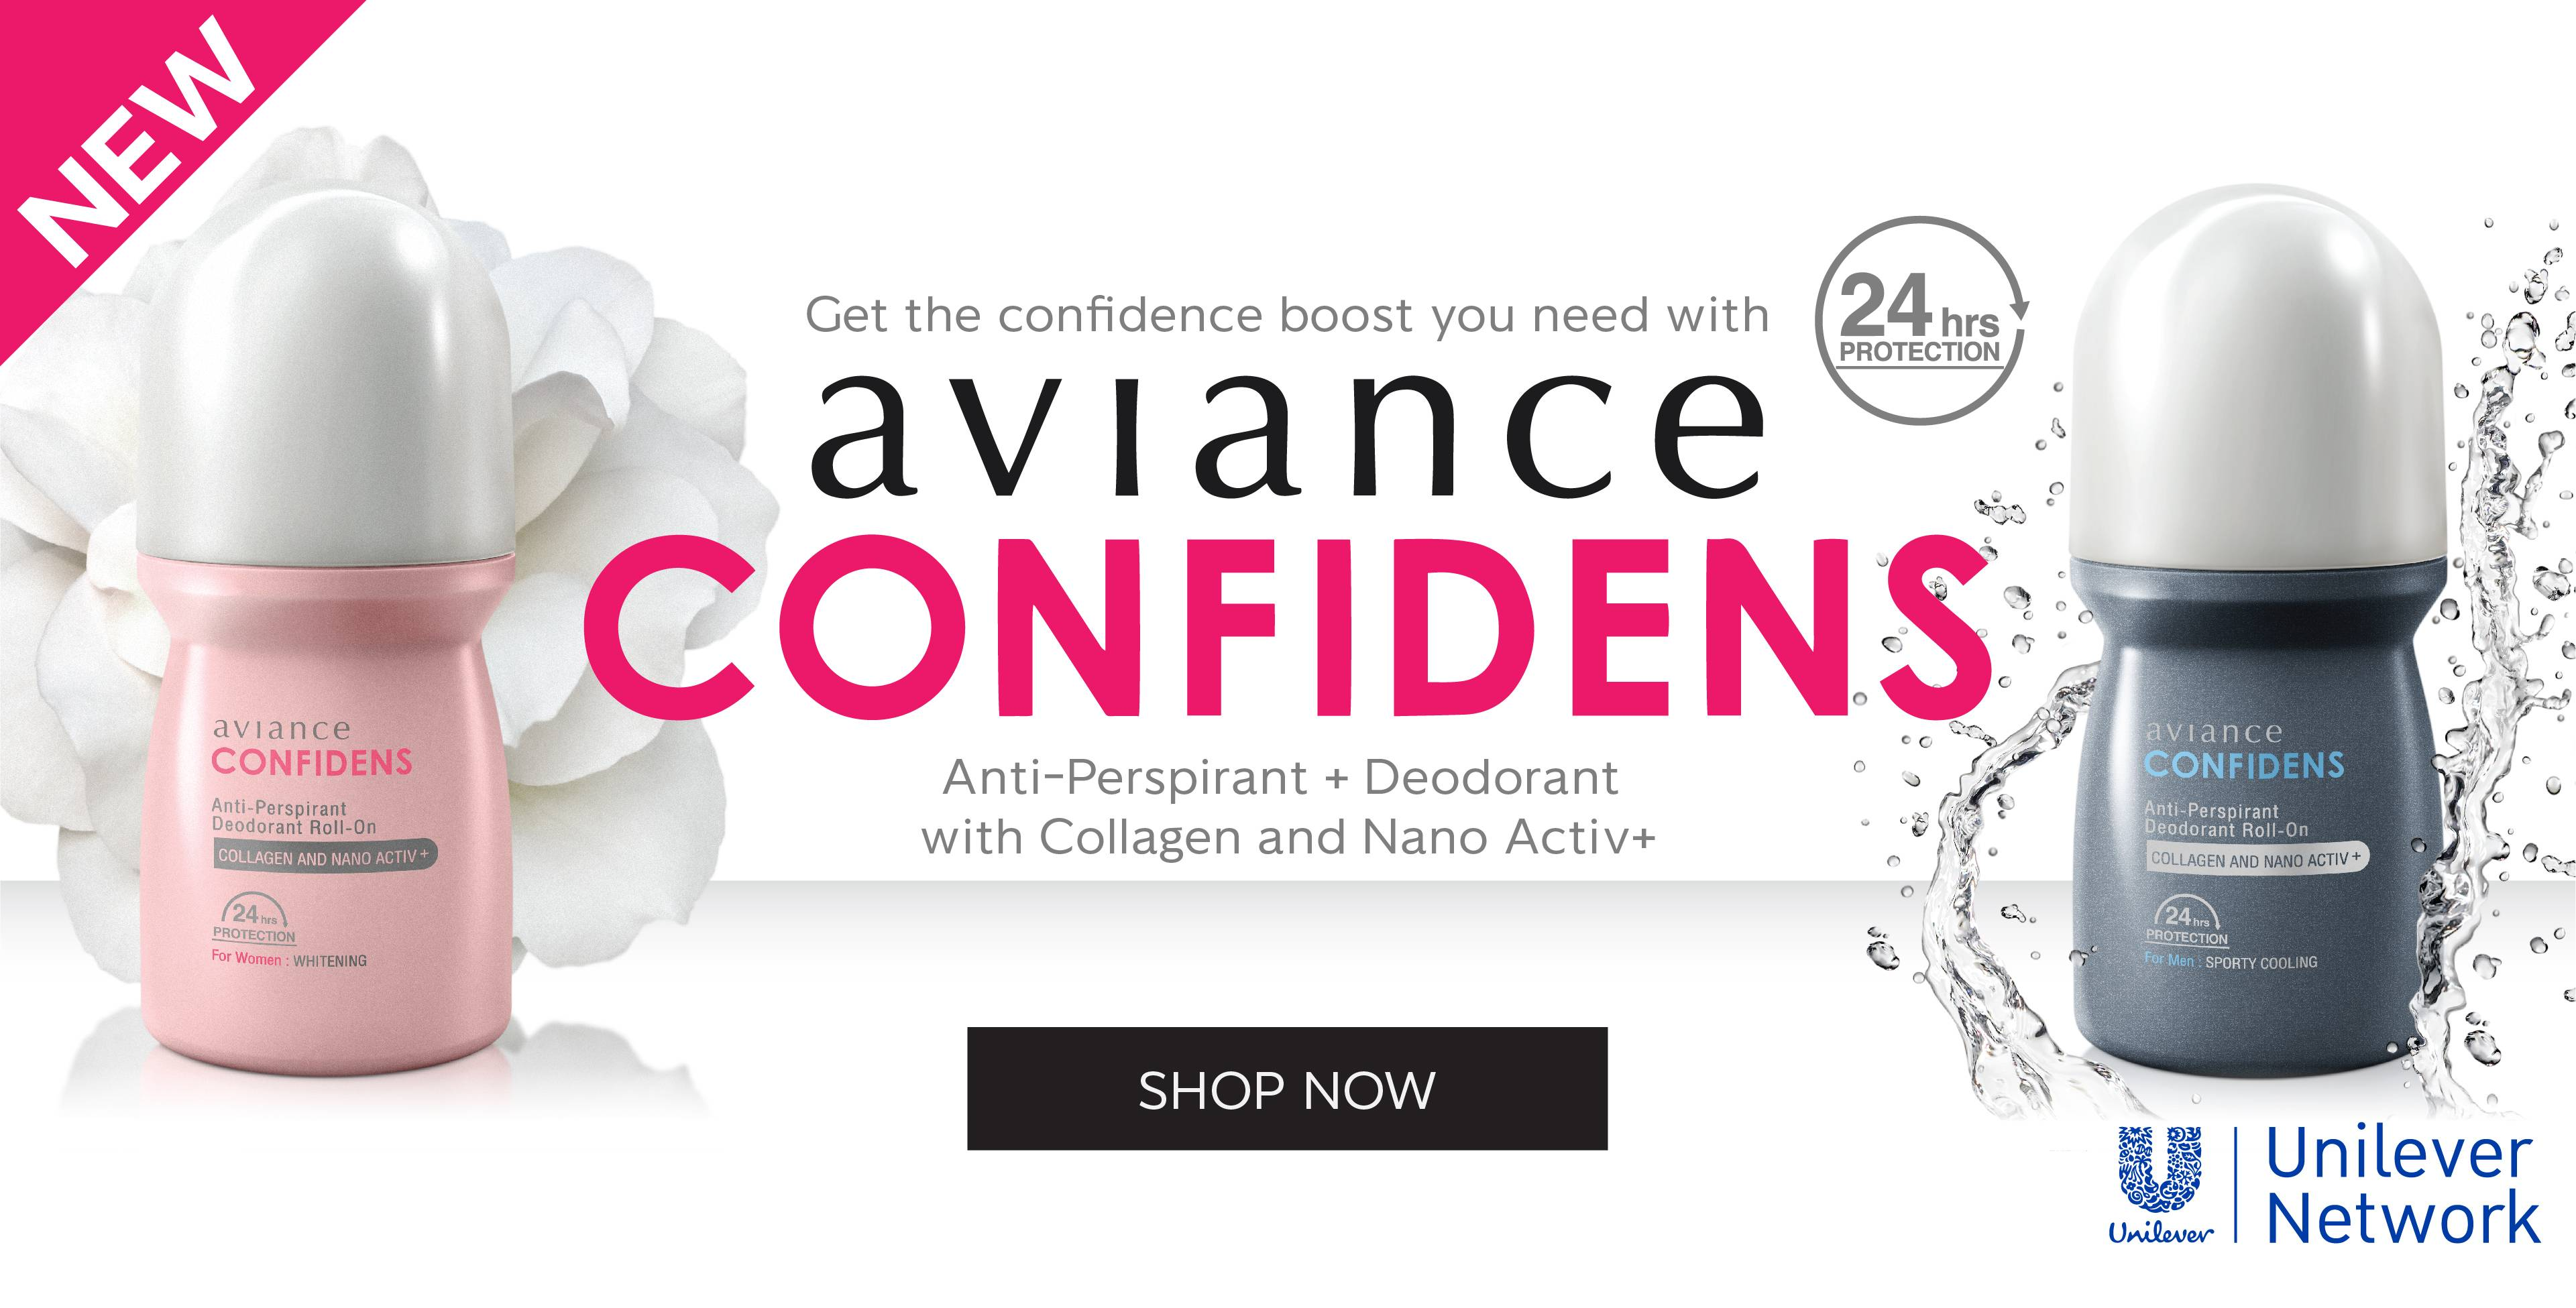 Newly Launch Confidens for Men & Women